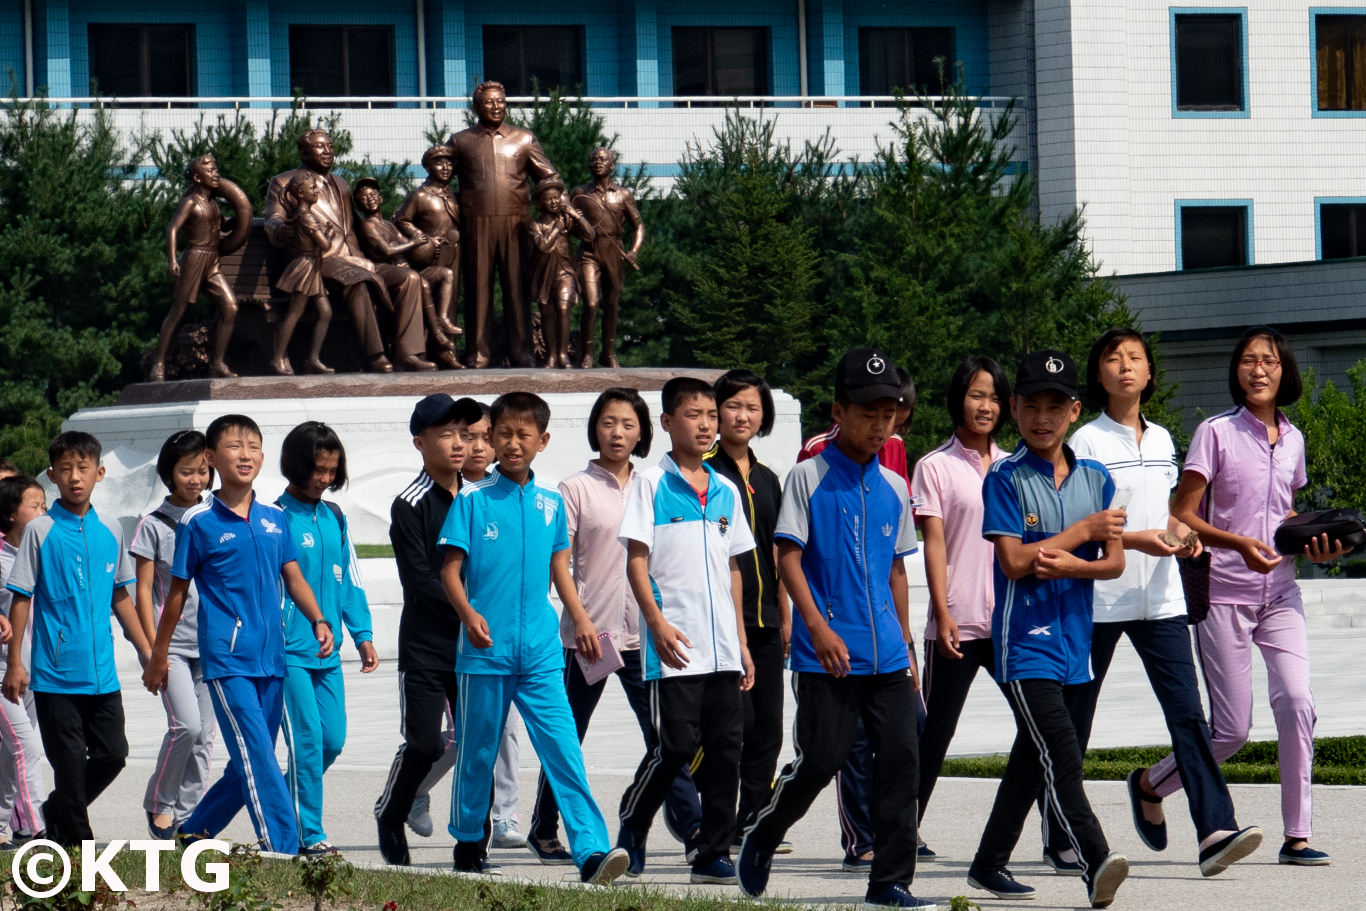 Songdowon Summer Camp in Wonsan, North Korea (DPRK). Trip arranged by KTG Tours